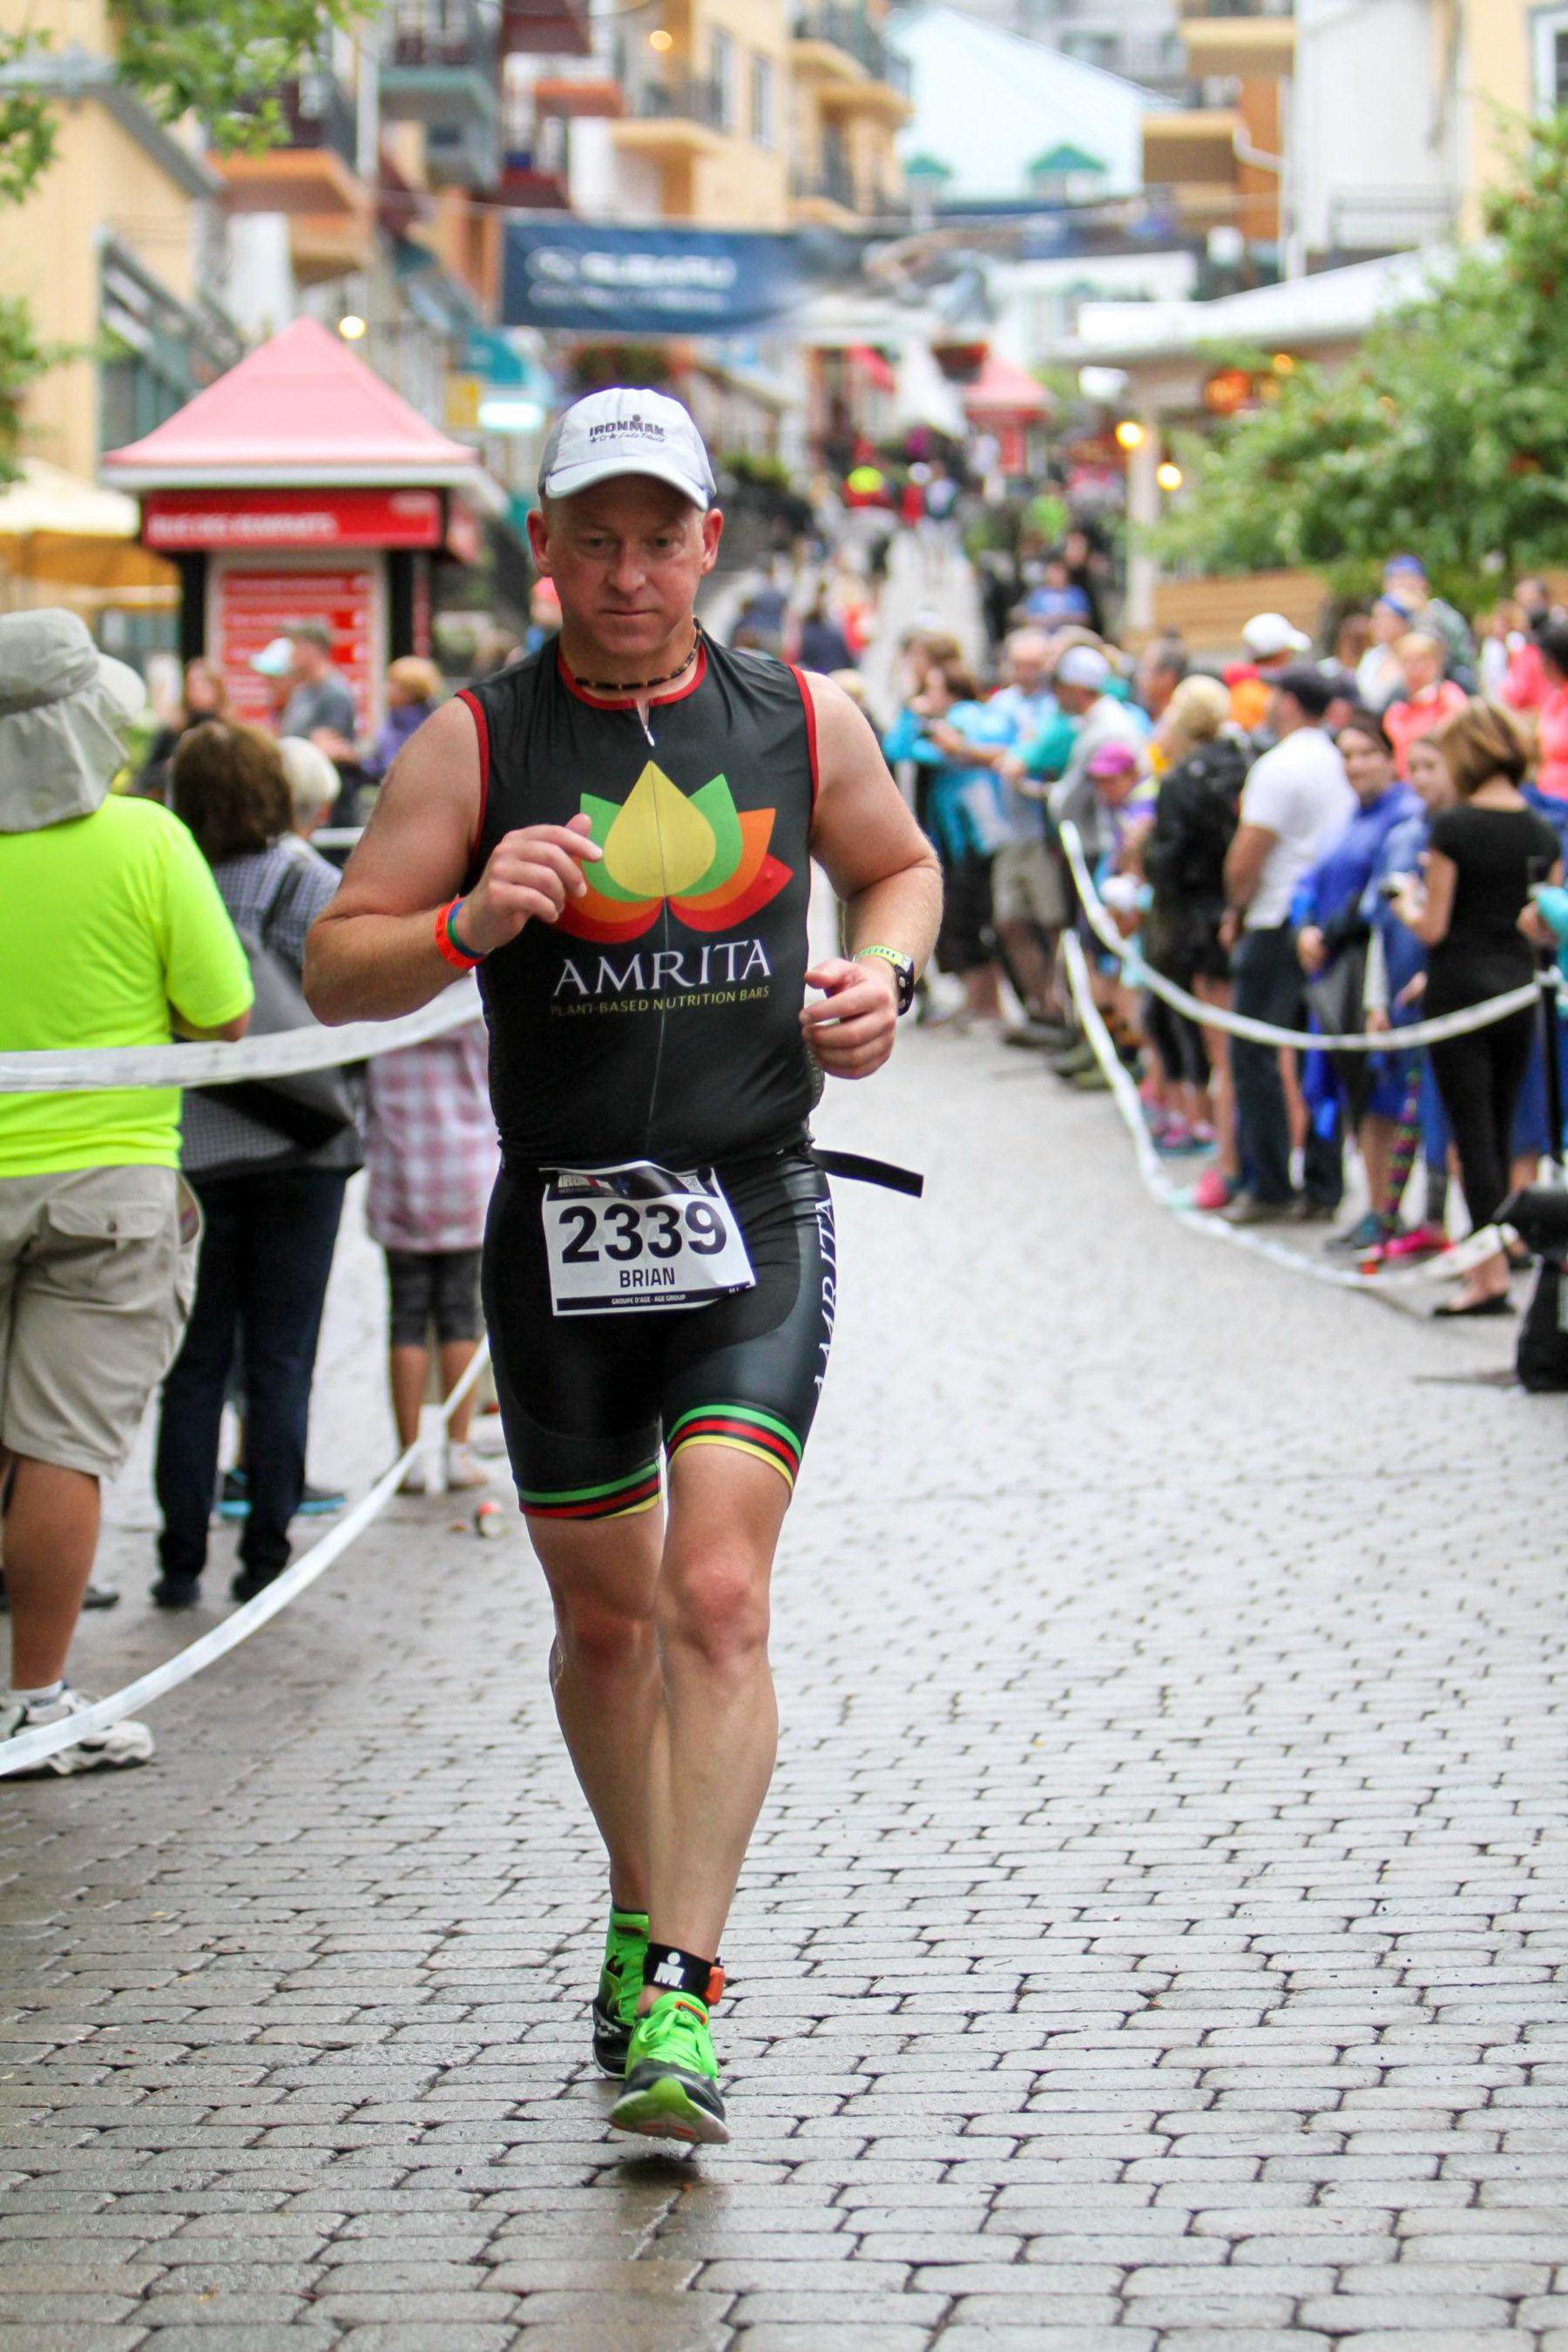 Ironman Mont-Tremblant 2016 - running through the village with a bunch of Clifblocks stored in my cheeks. #LikeAChipmunk